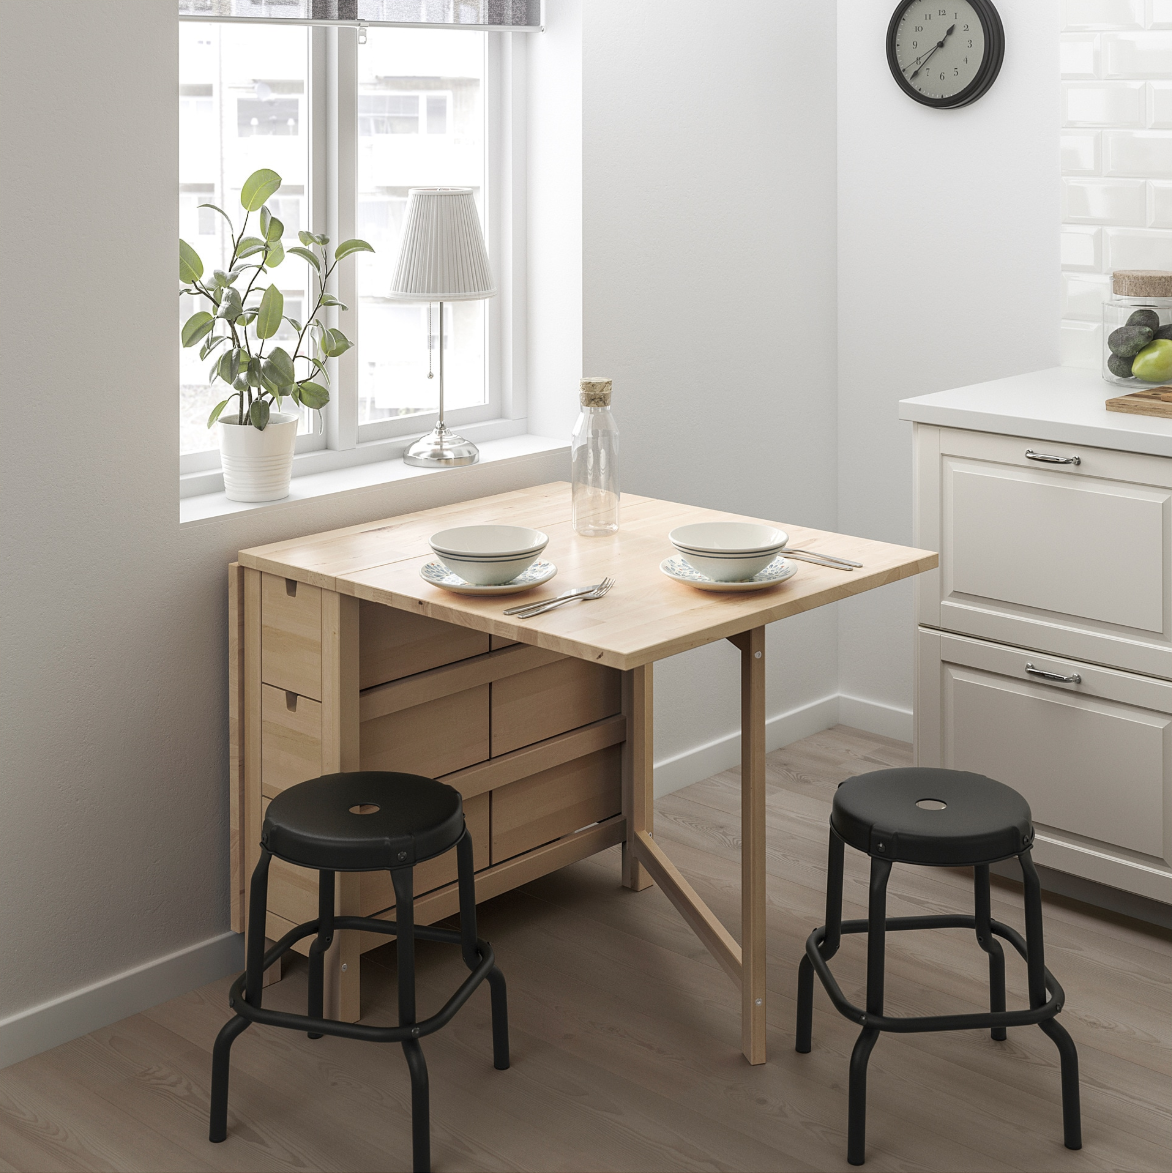 Peachy Norden Raskog Table And 2 Stools Andrewgaddart Wooden Chair Designs For Living Room Andrewgaddartcom